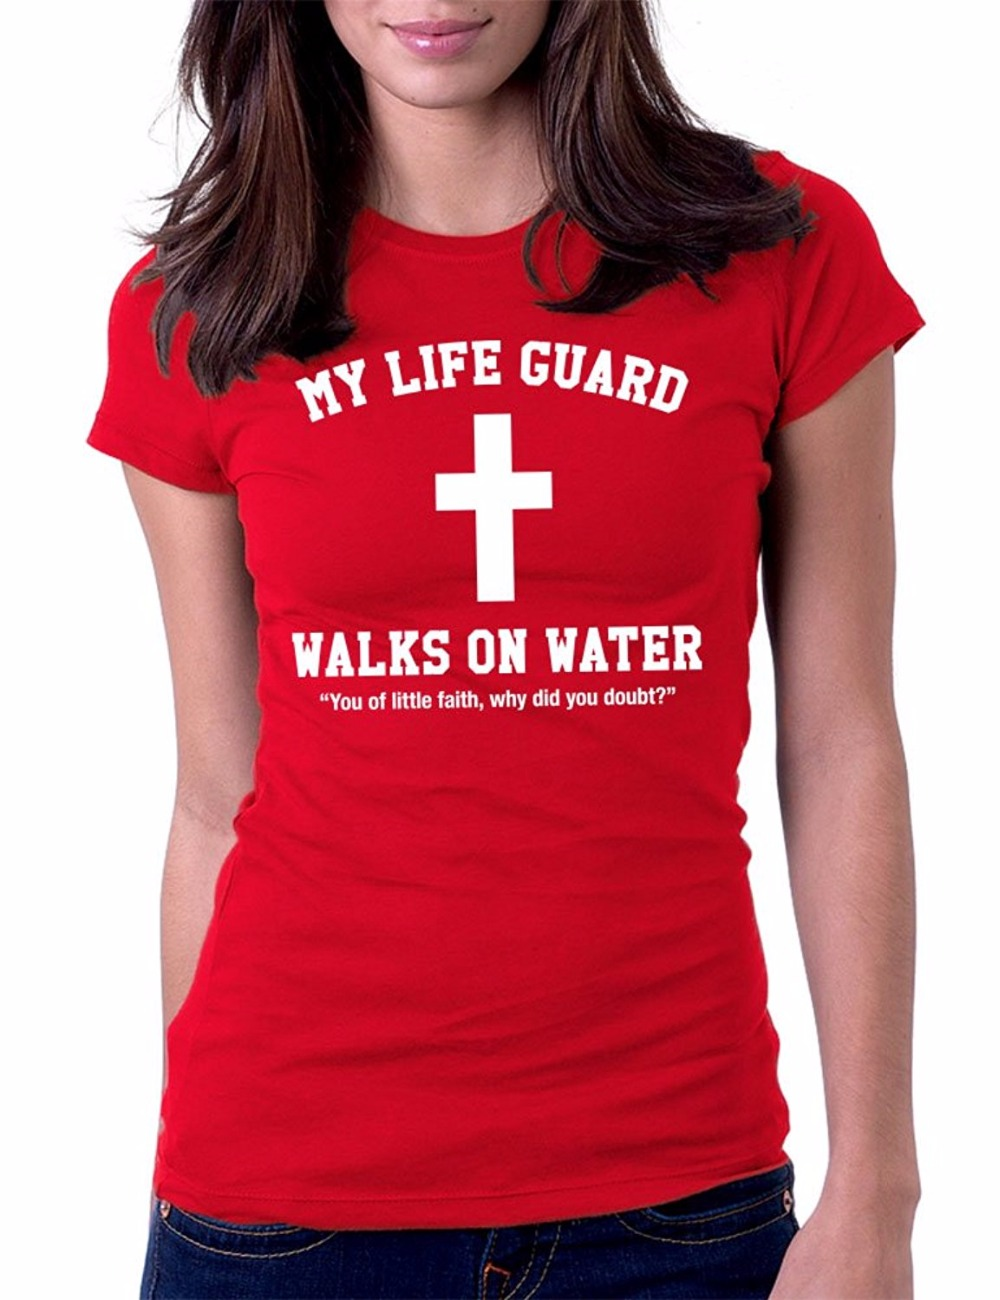 7097a91f63d Fashion Clothing Women T Shirt New Printed Cool My Lifeguard Walks On Water  Jesus Christian Summer Style Cotton Short Slevee Tee